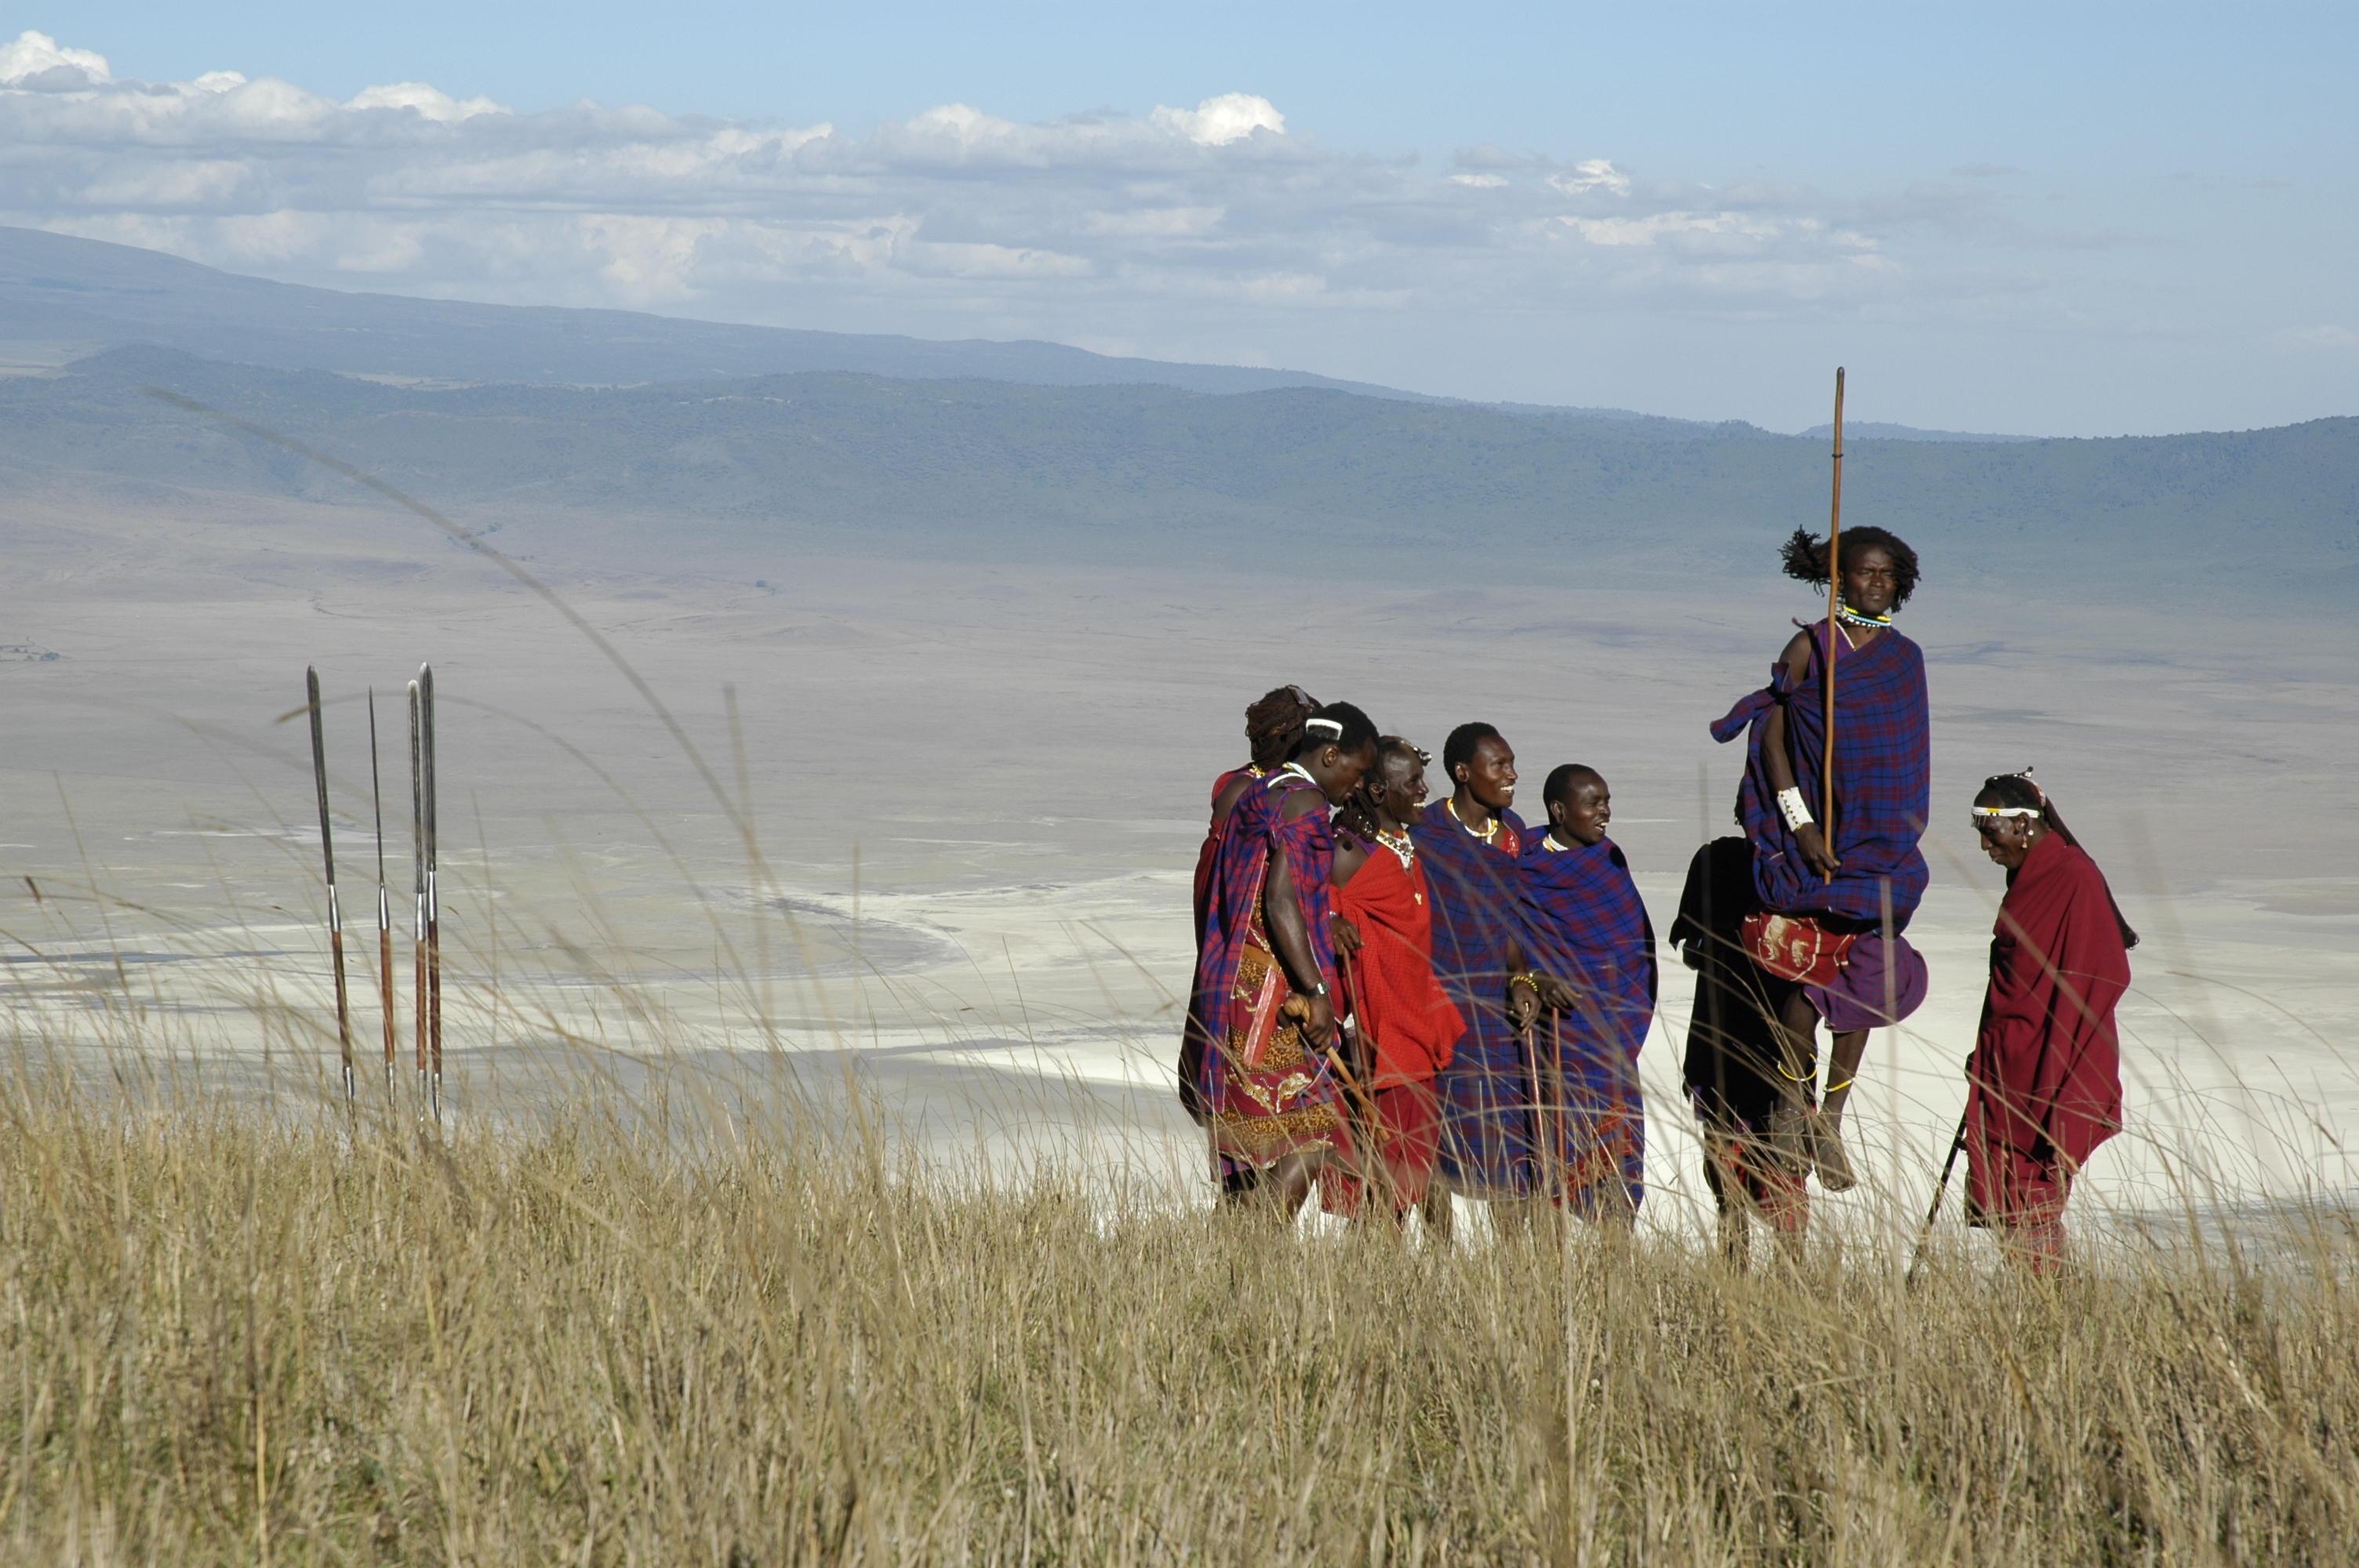 Jumping with the Maasai, Ngorongoro